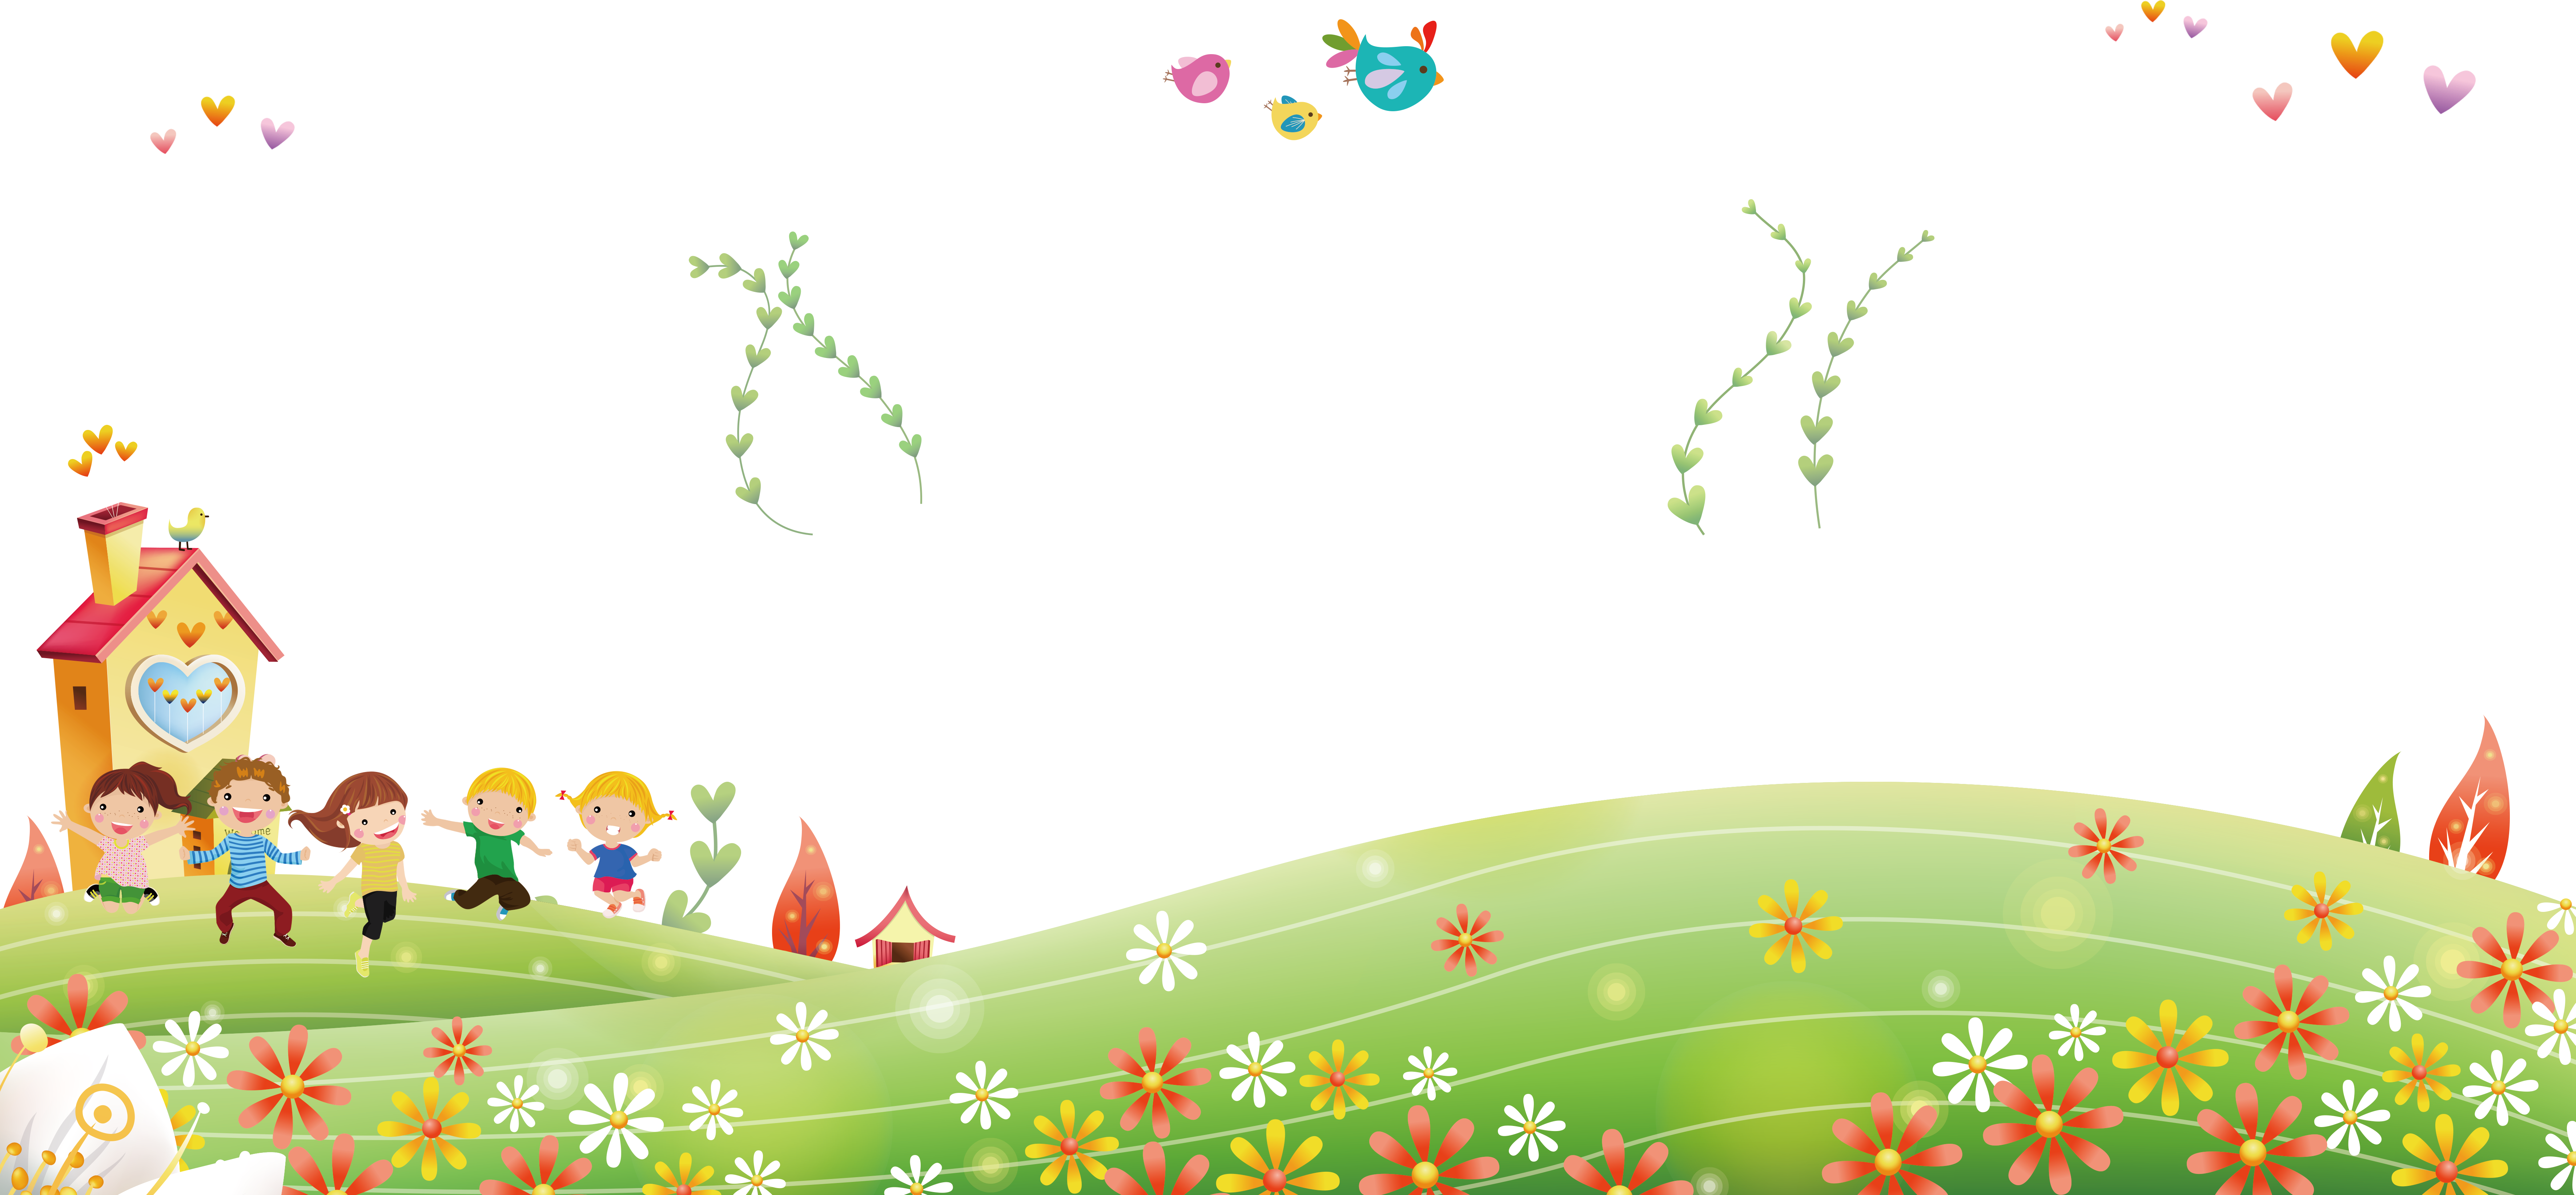 Children background png. Child cartoon outside the